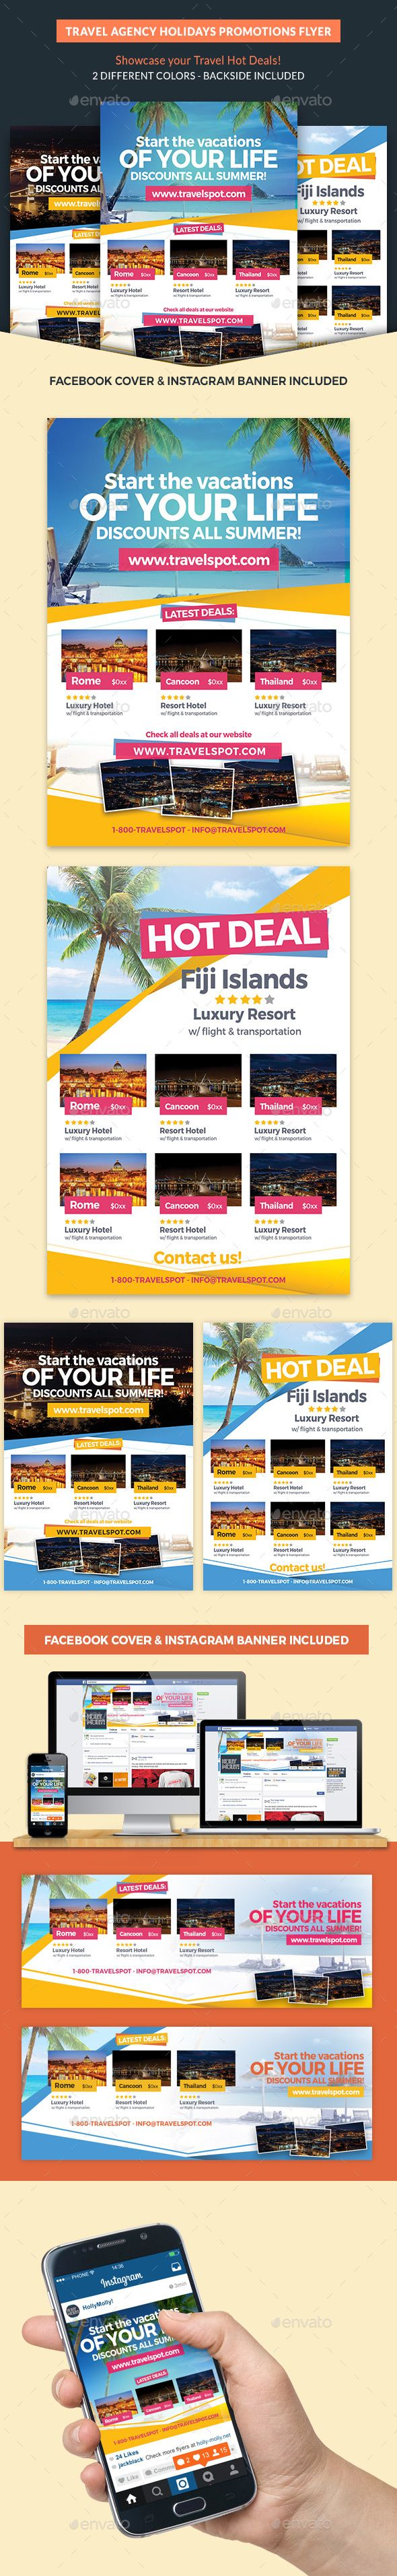 Travel Agency Holidays Promotion Flyer  Flyer Template Promotion